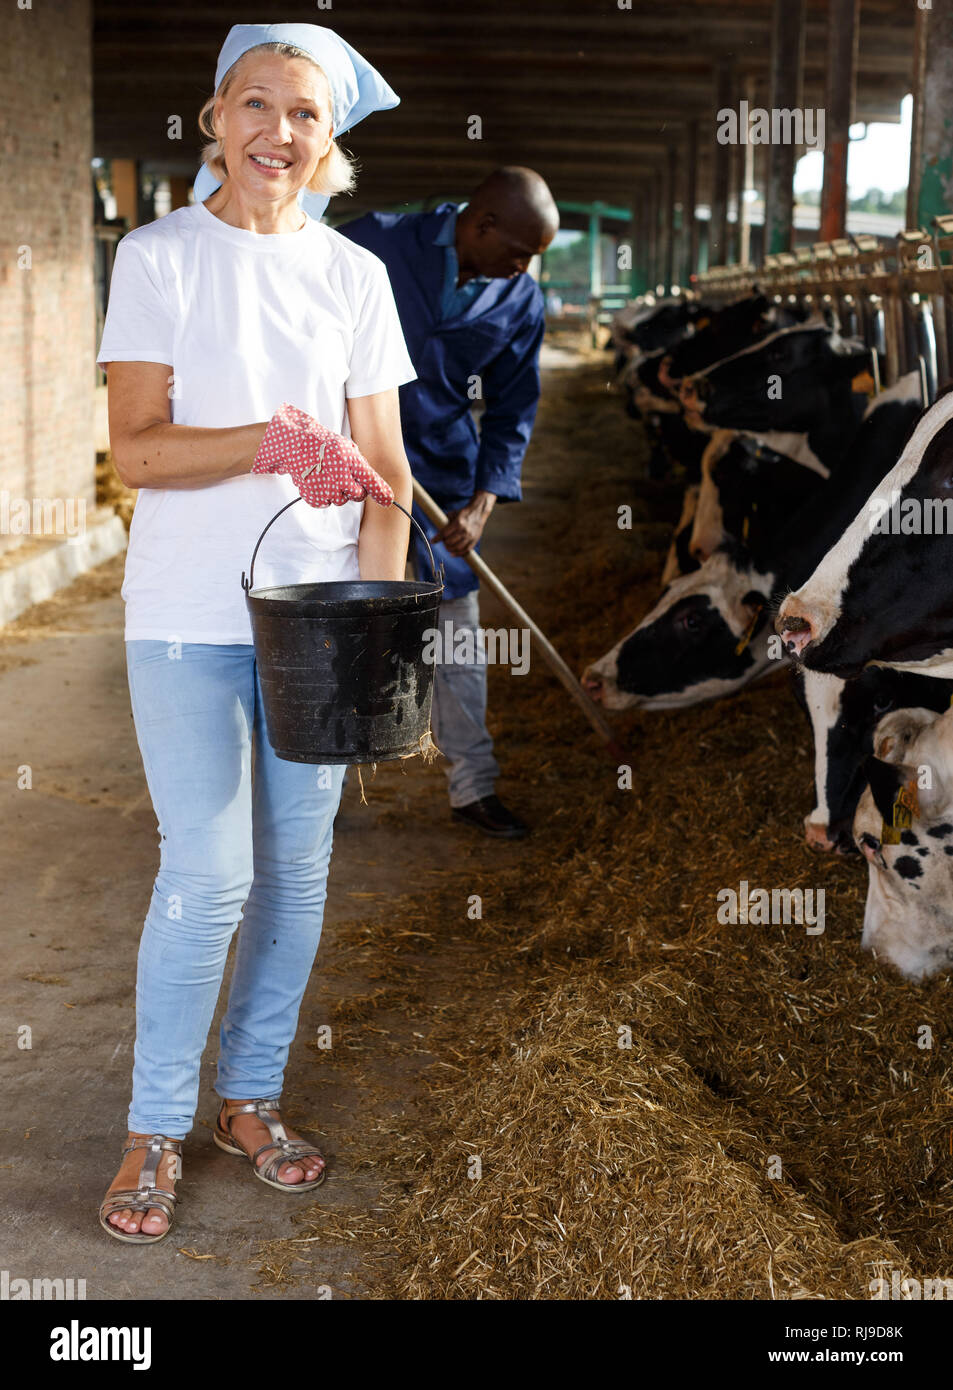 Portrait of smiling mature woman farmer taking care  cows at the cow farm - Stock Image